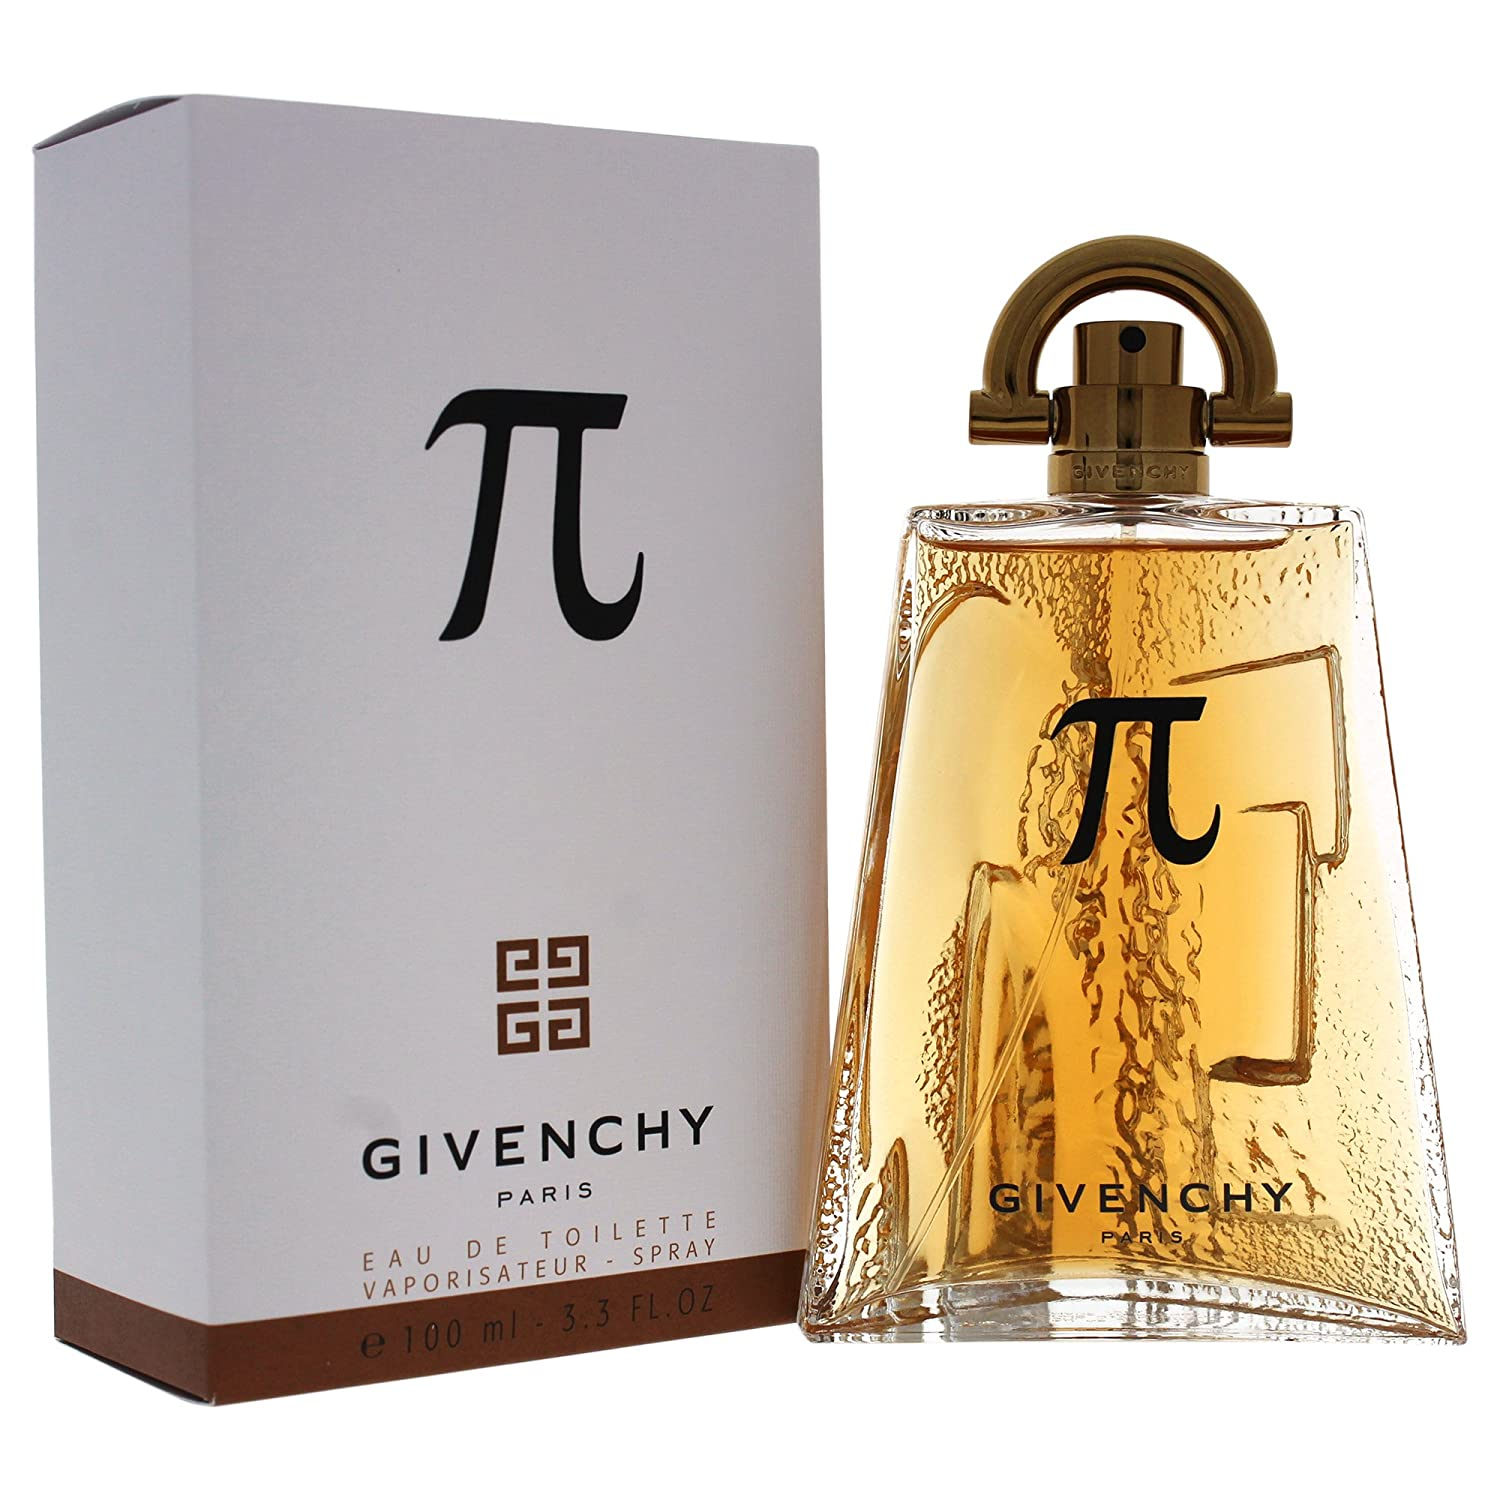 Givenchy Pi by for Men Eau De toilette Spray, 3.3-Ounce 122502 27779